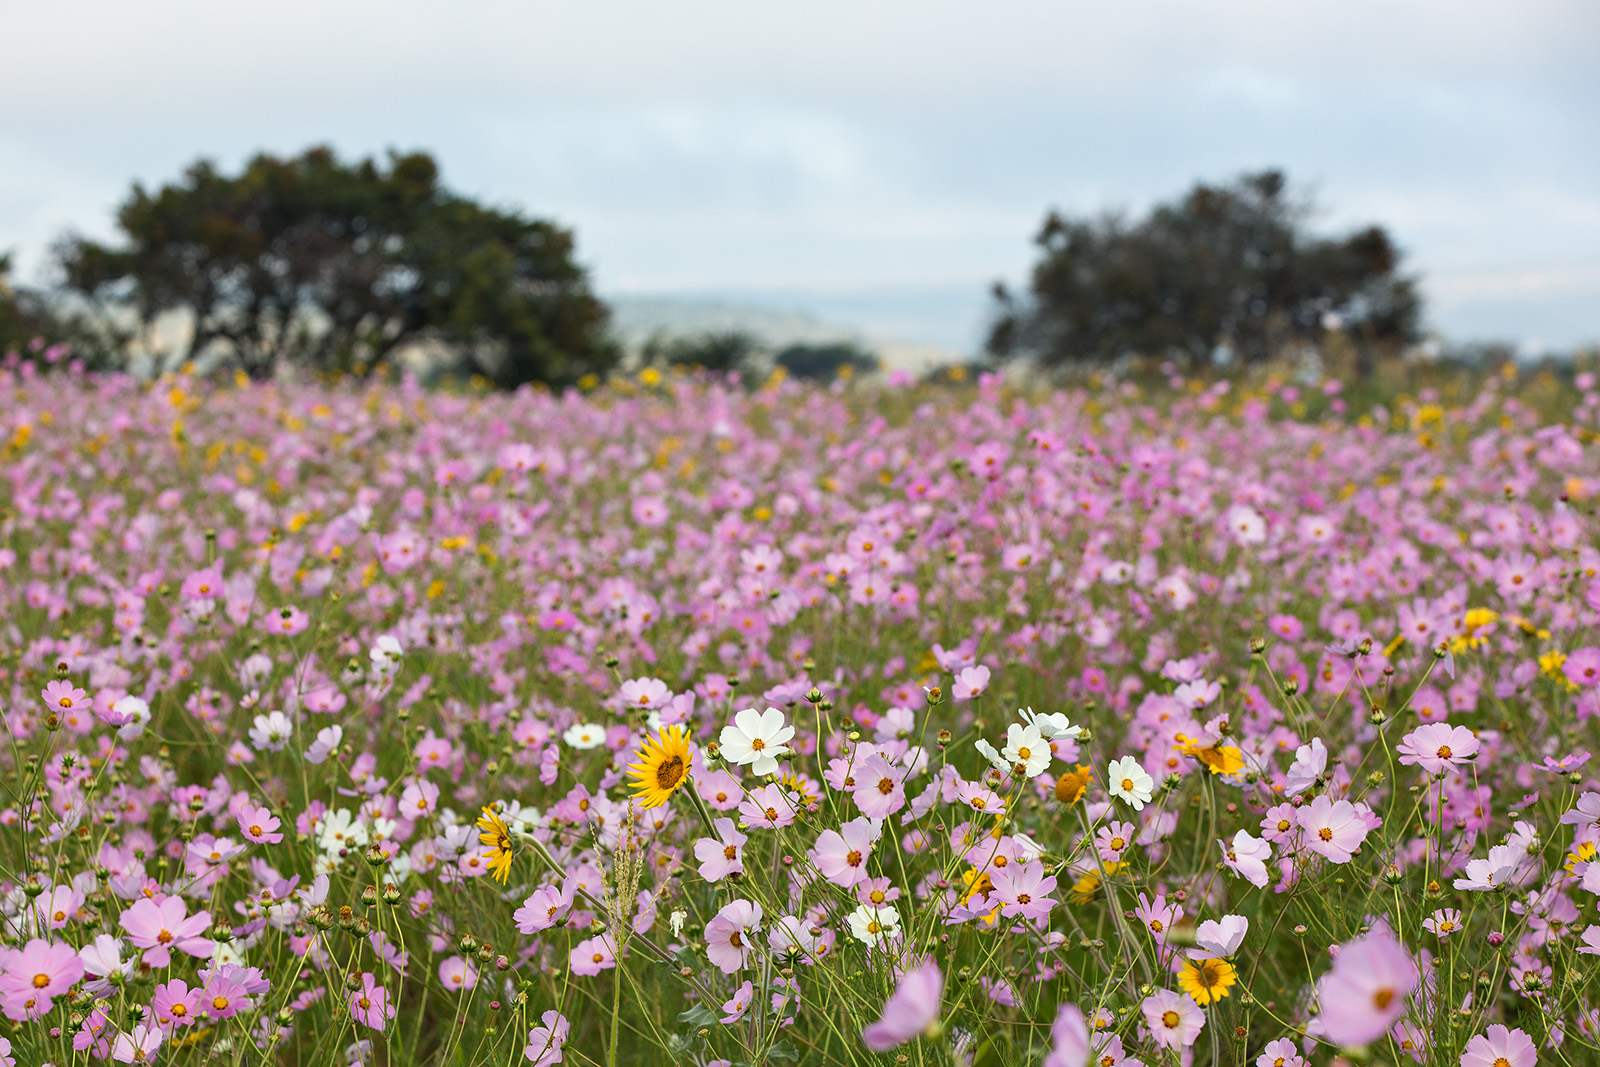 A field of <i>Cosmos bipinnatus</i>